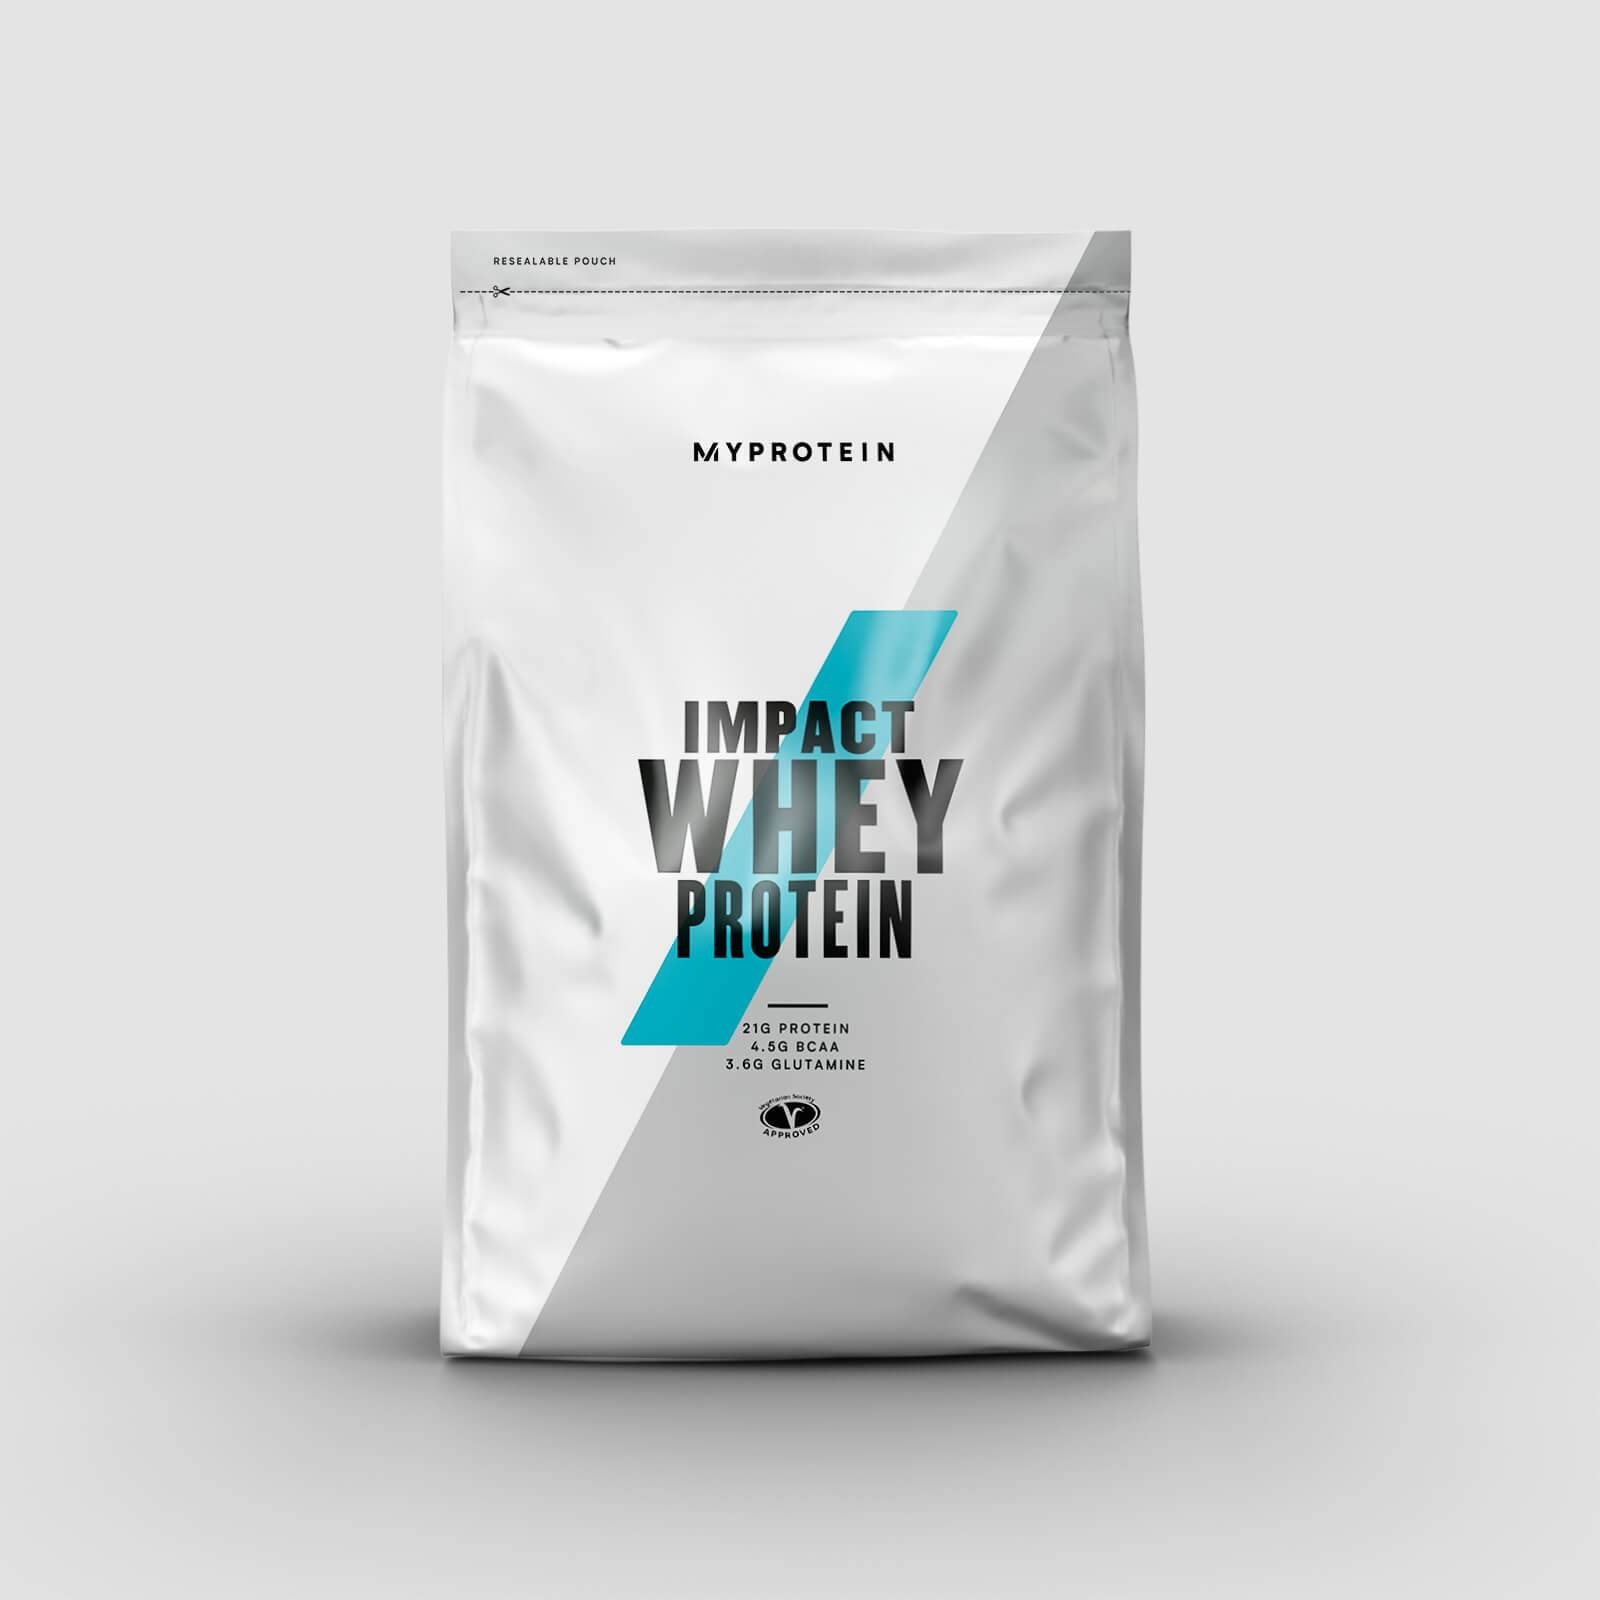 Myprotein Impact Whey Protein - 2.5kg - Chocolate Peanut Butter - New and Improved